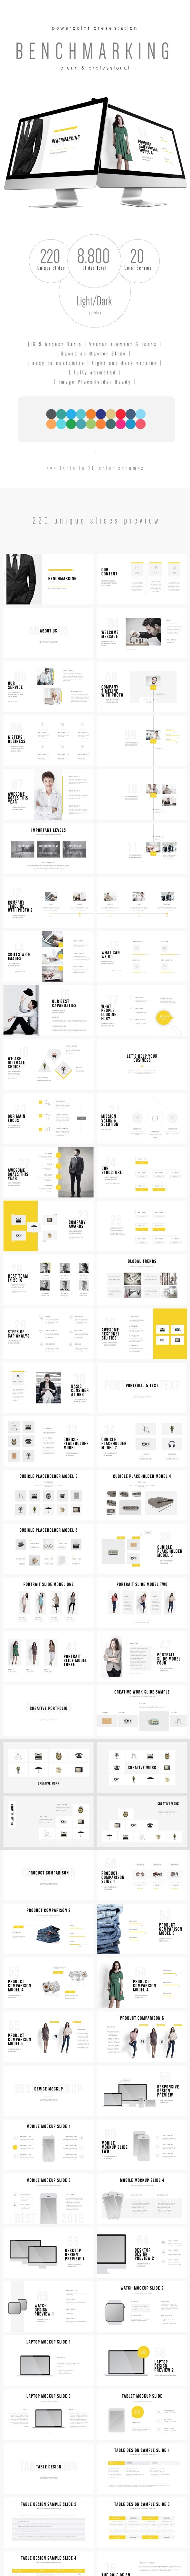 Benchmarking - Multipurpose PowerPoint Template (V.26) - Business PowerPoint Templates